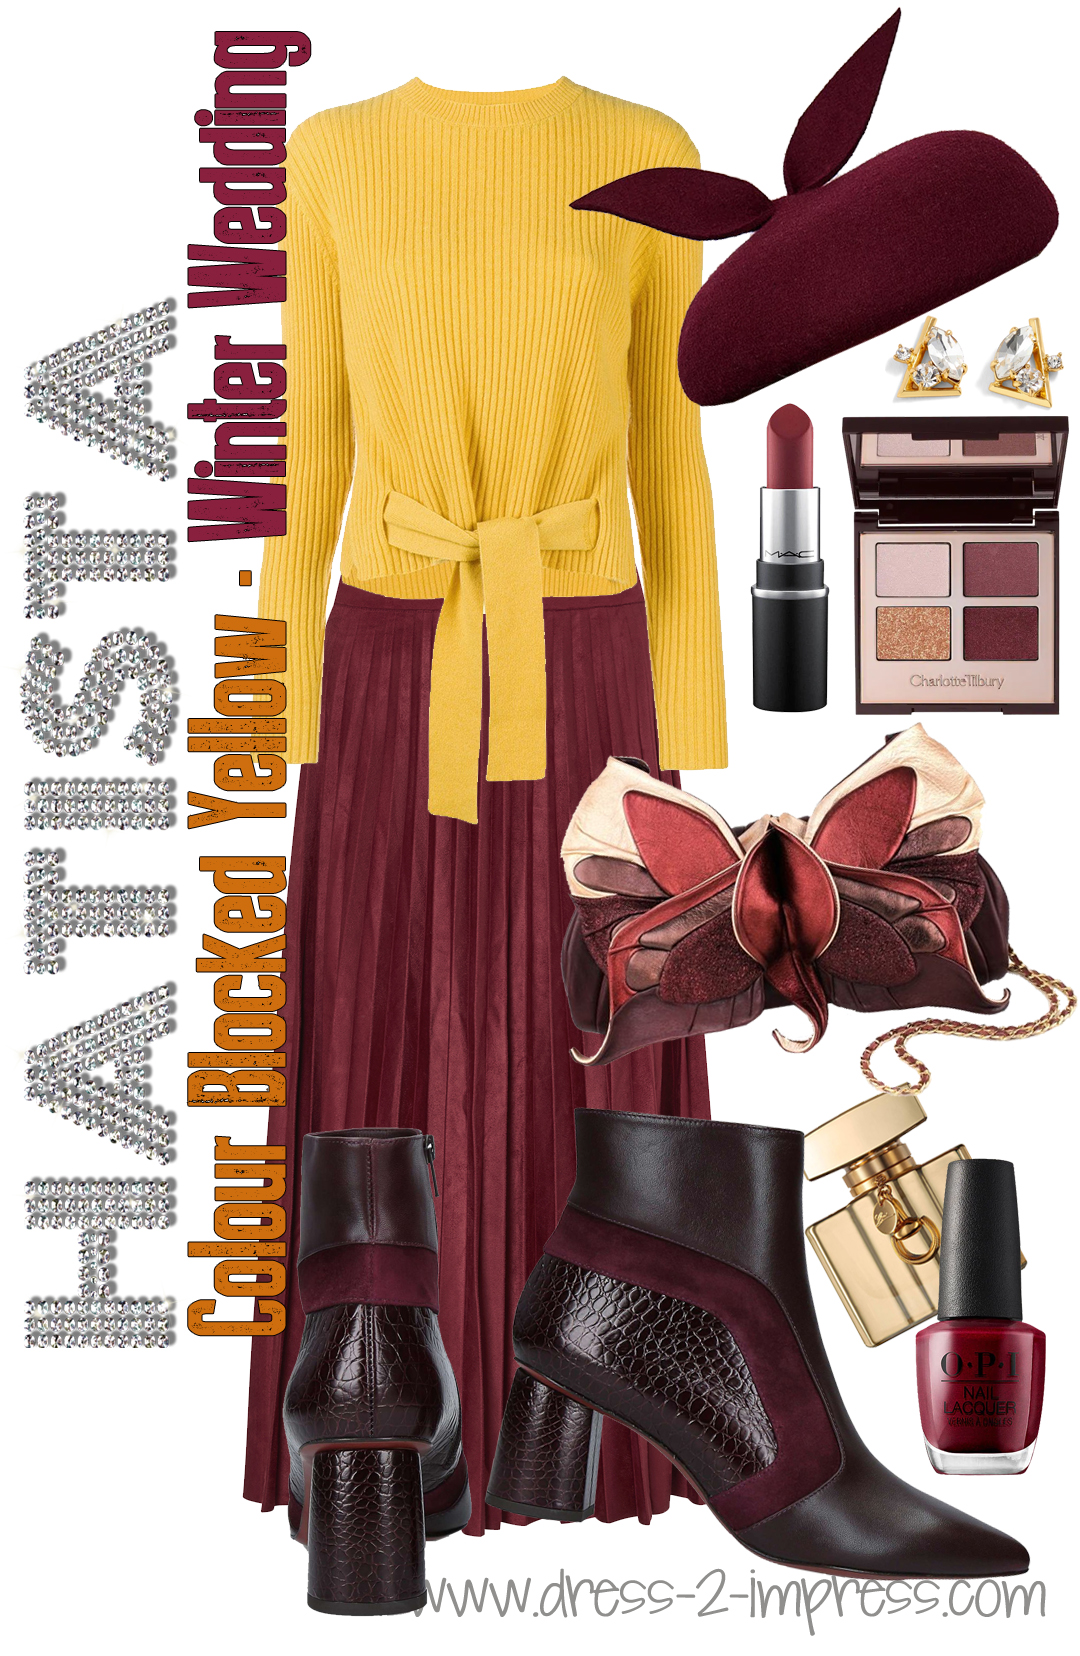 How to dress for a Winter Wedding 2019. Burgundy and Mustard Yellow Outfits. What to wear to a Winter Wedding. Winter Wedding Guests outfits 2019. How to dress for a winter wedding. How to wear Yellow. What to wear with Burgundy. What colours go with Burgundy.